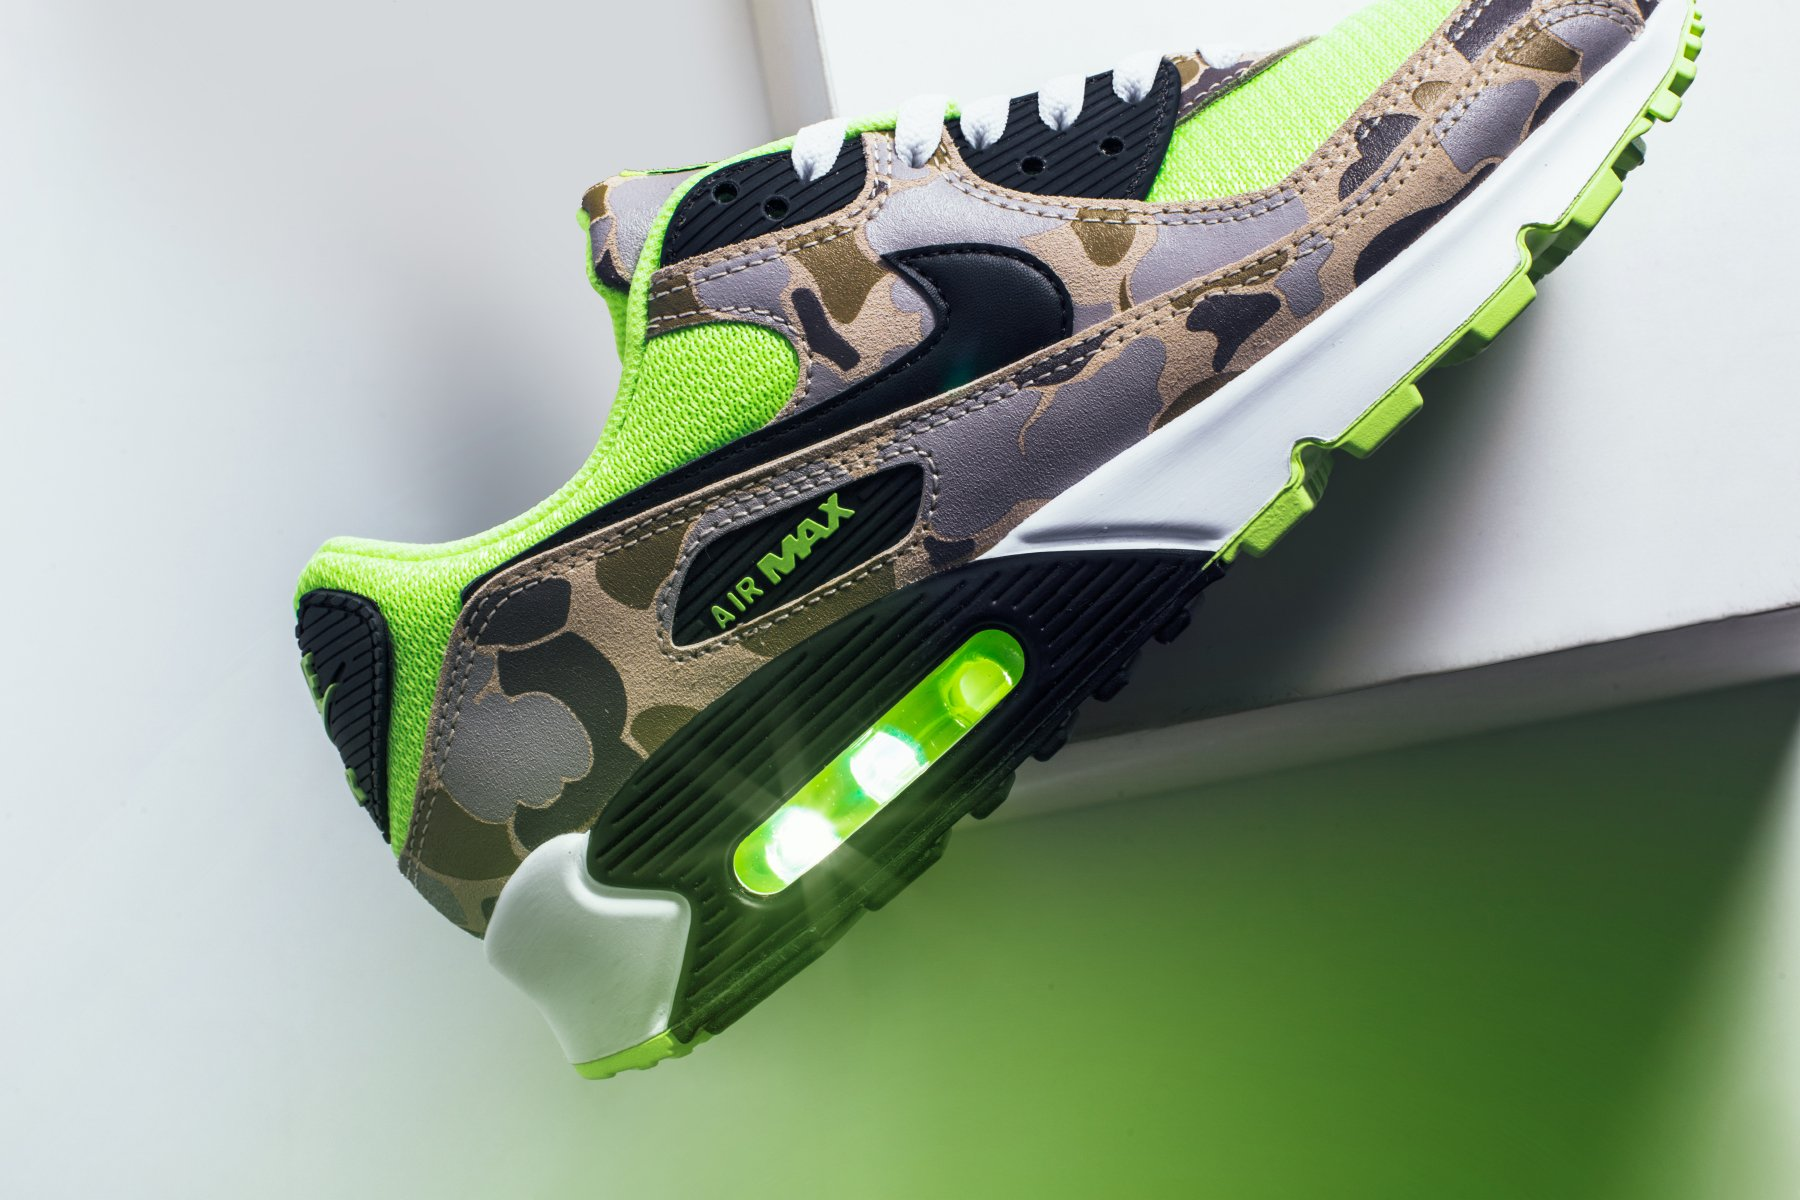 5月23日 発売予定 NIKE AIR MAX 90 SP 'GREEN CAMO' (CW4039-300)